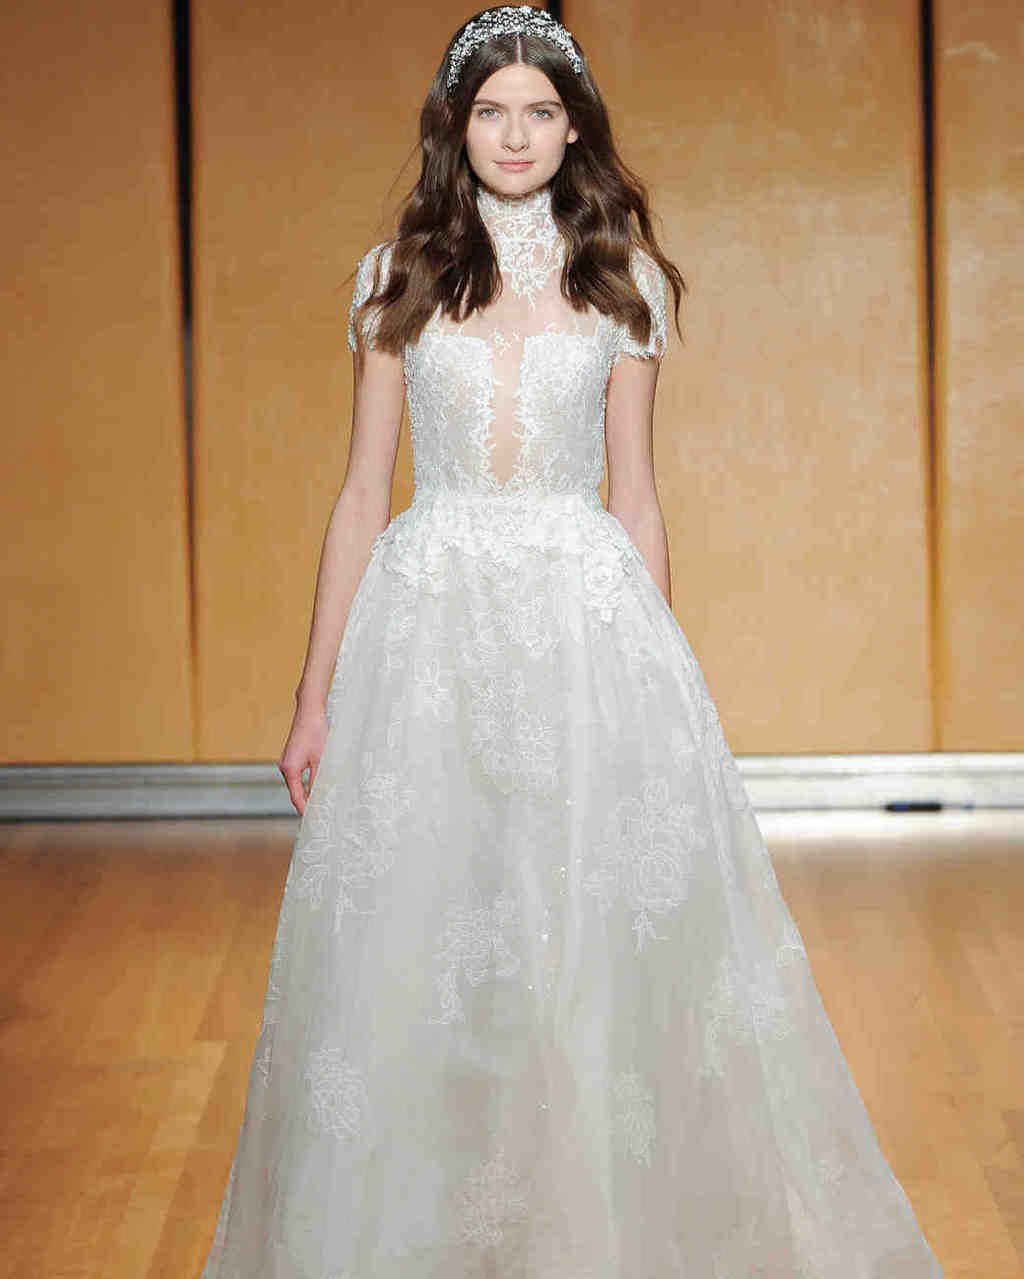 inbal-dror-wedding-dress-fall2017-6203351-003_vert